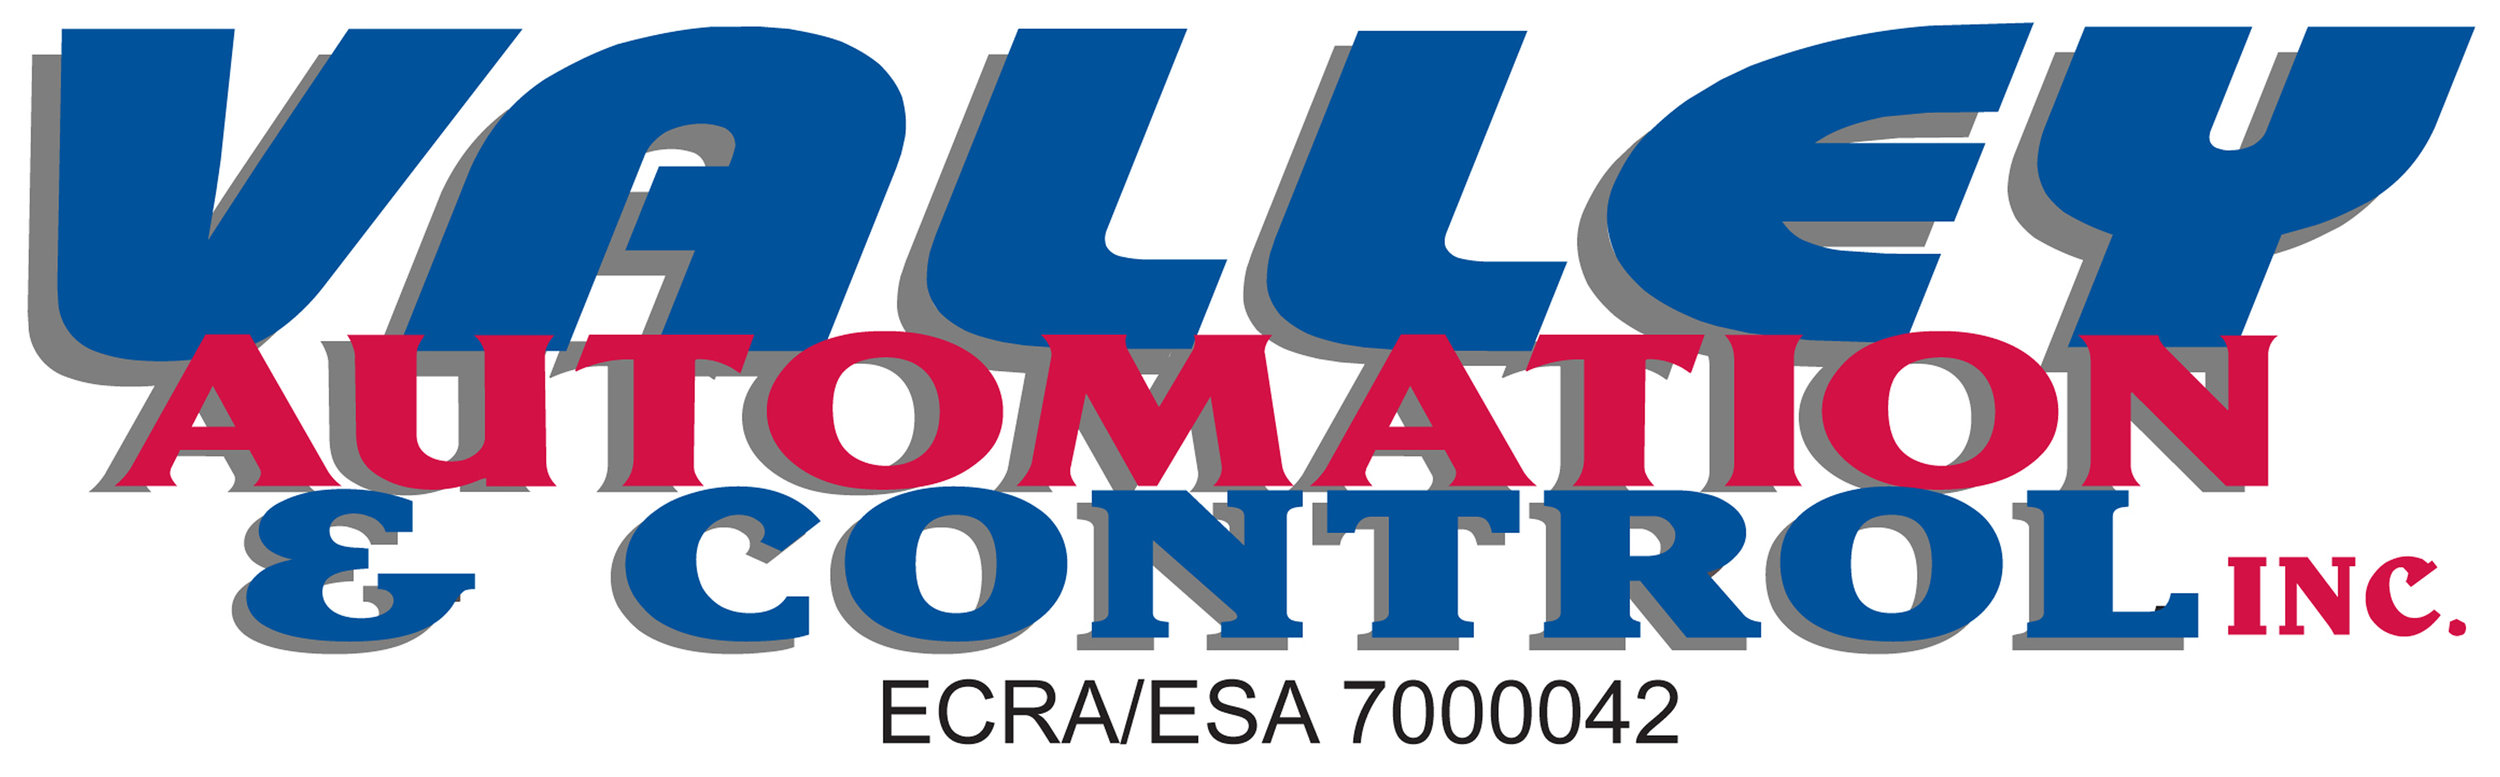 Logo_Valley_Automation_and_Control_Inc_2015.jpg